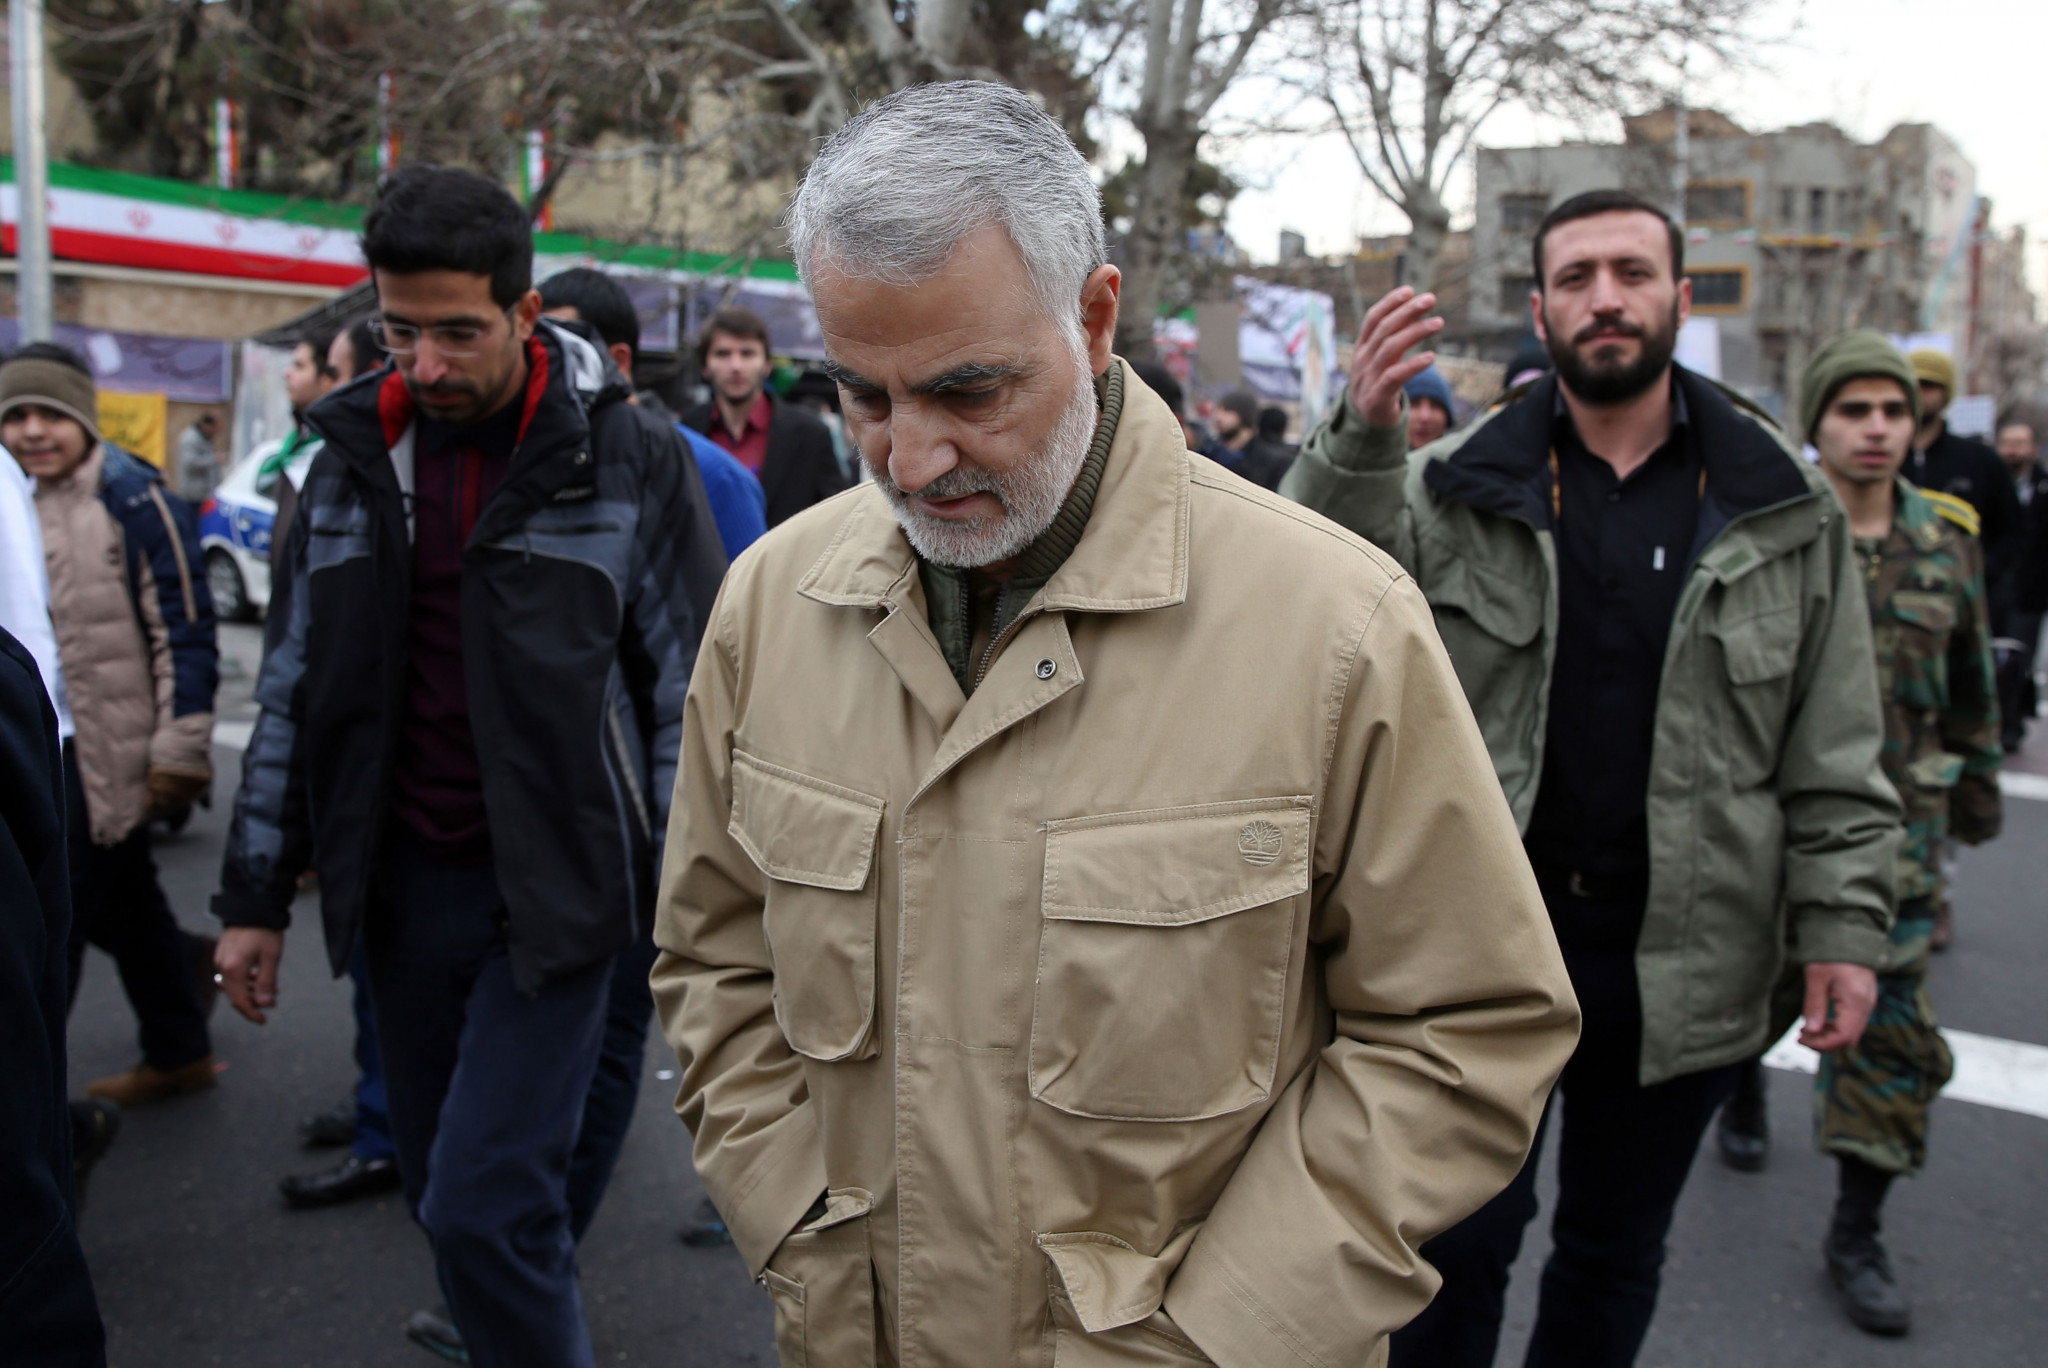 Qasem Soleimani was killed in an airstrike ordered by US President Donald Trump ©Getty Images